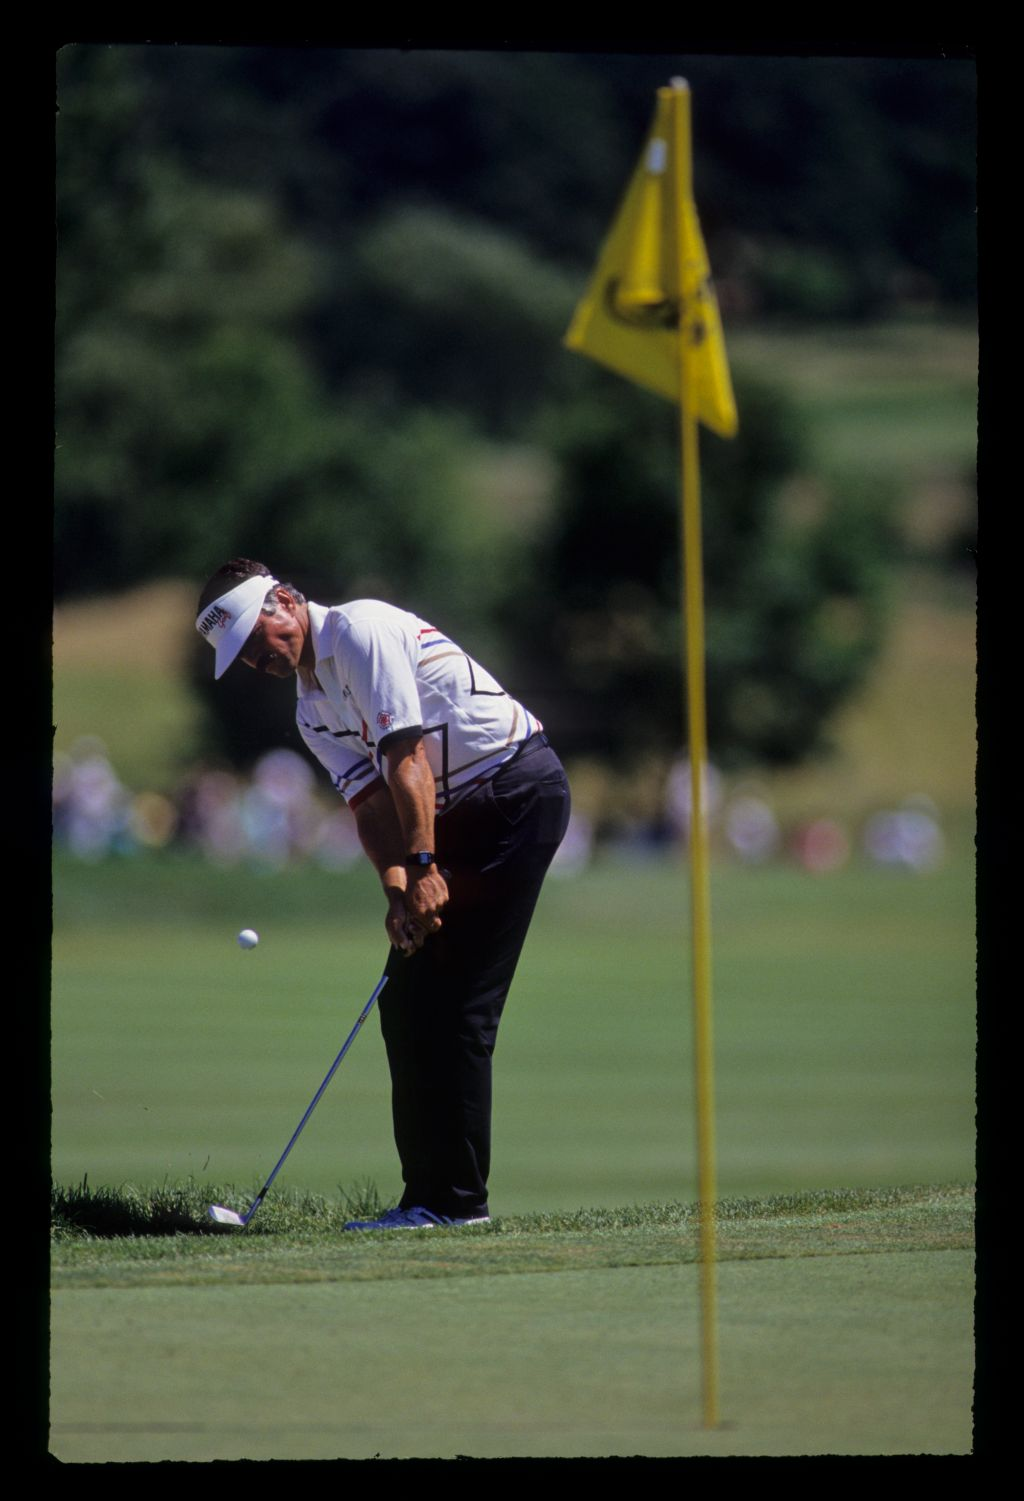 Scott Simpson chipping from greenside rough during the 1991 US Open